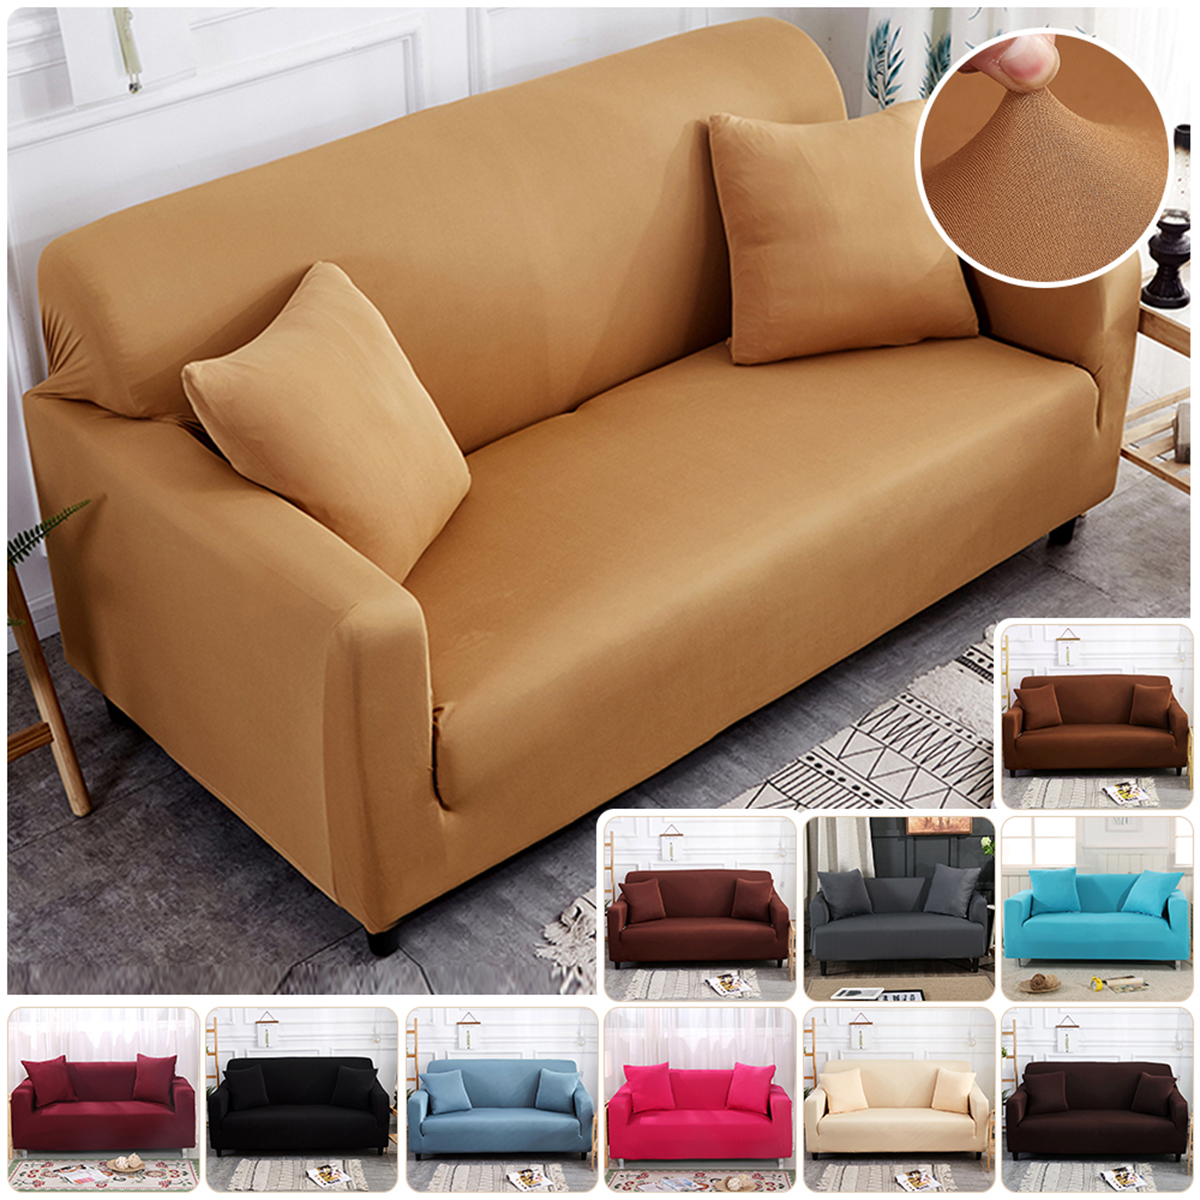 1-4 Seater Sofa Recliner Covers Slipcover Stretch Furniture Cover Protector DIY